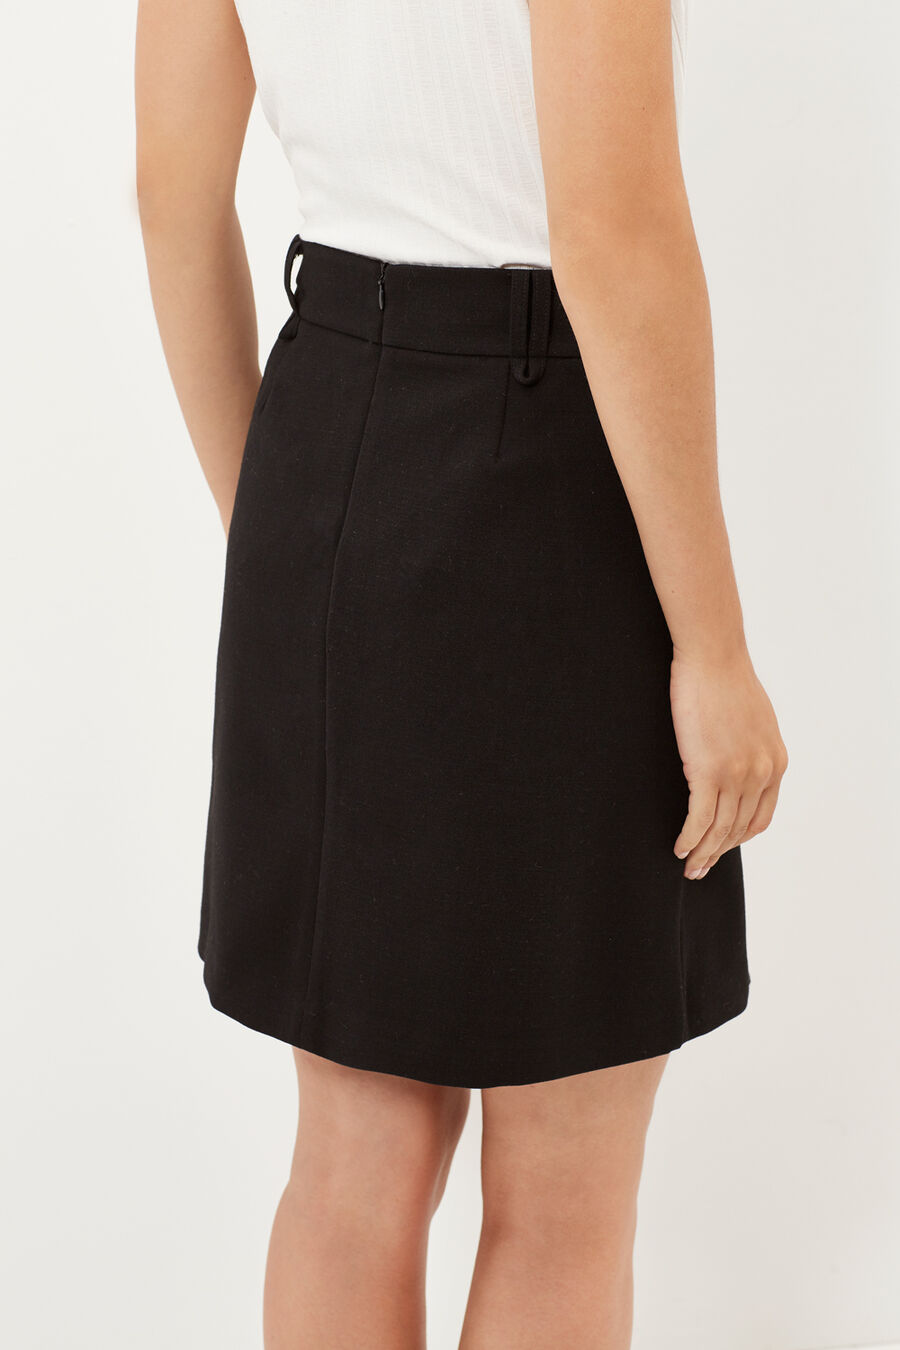 Miniskirt with pockets